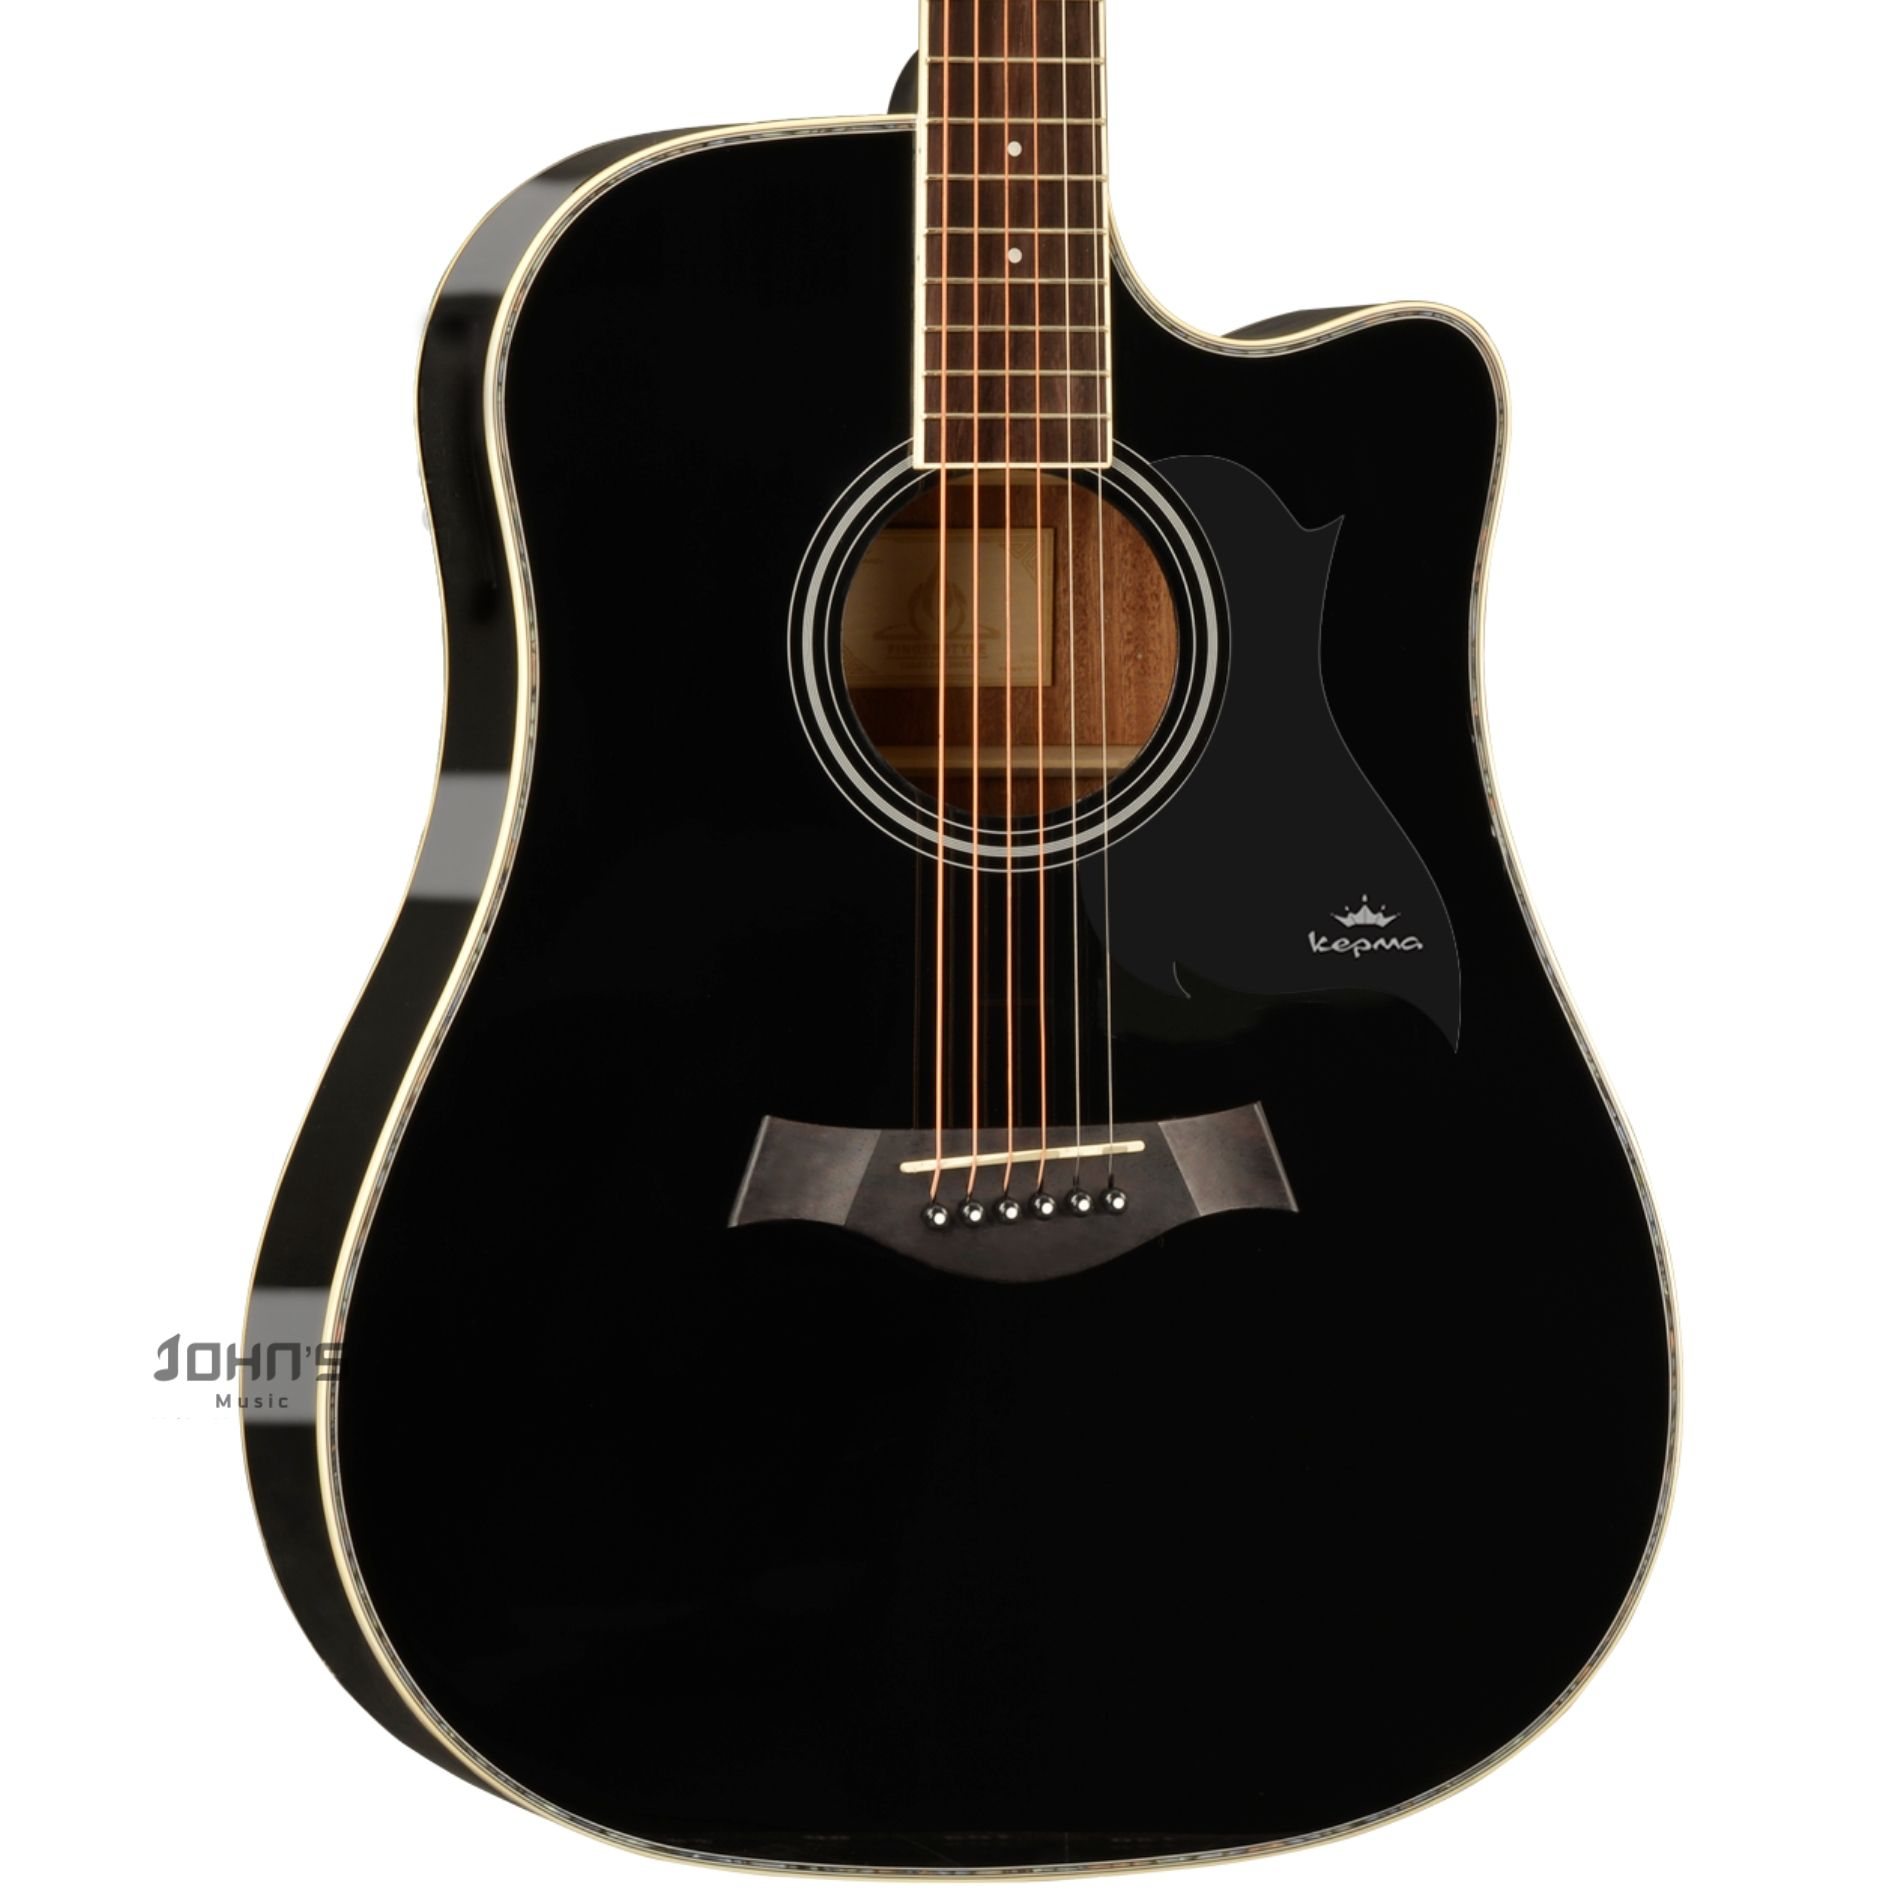 Kepma D1C acoustic Guitar Black